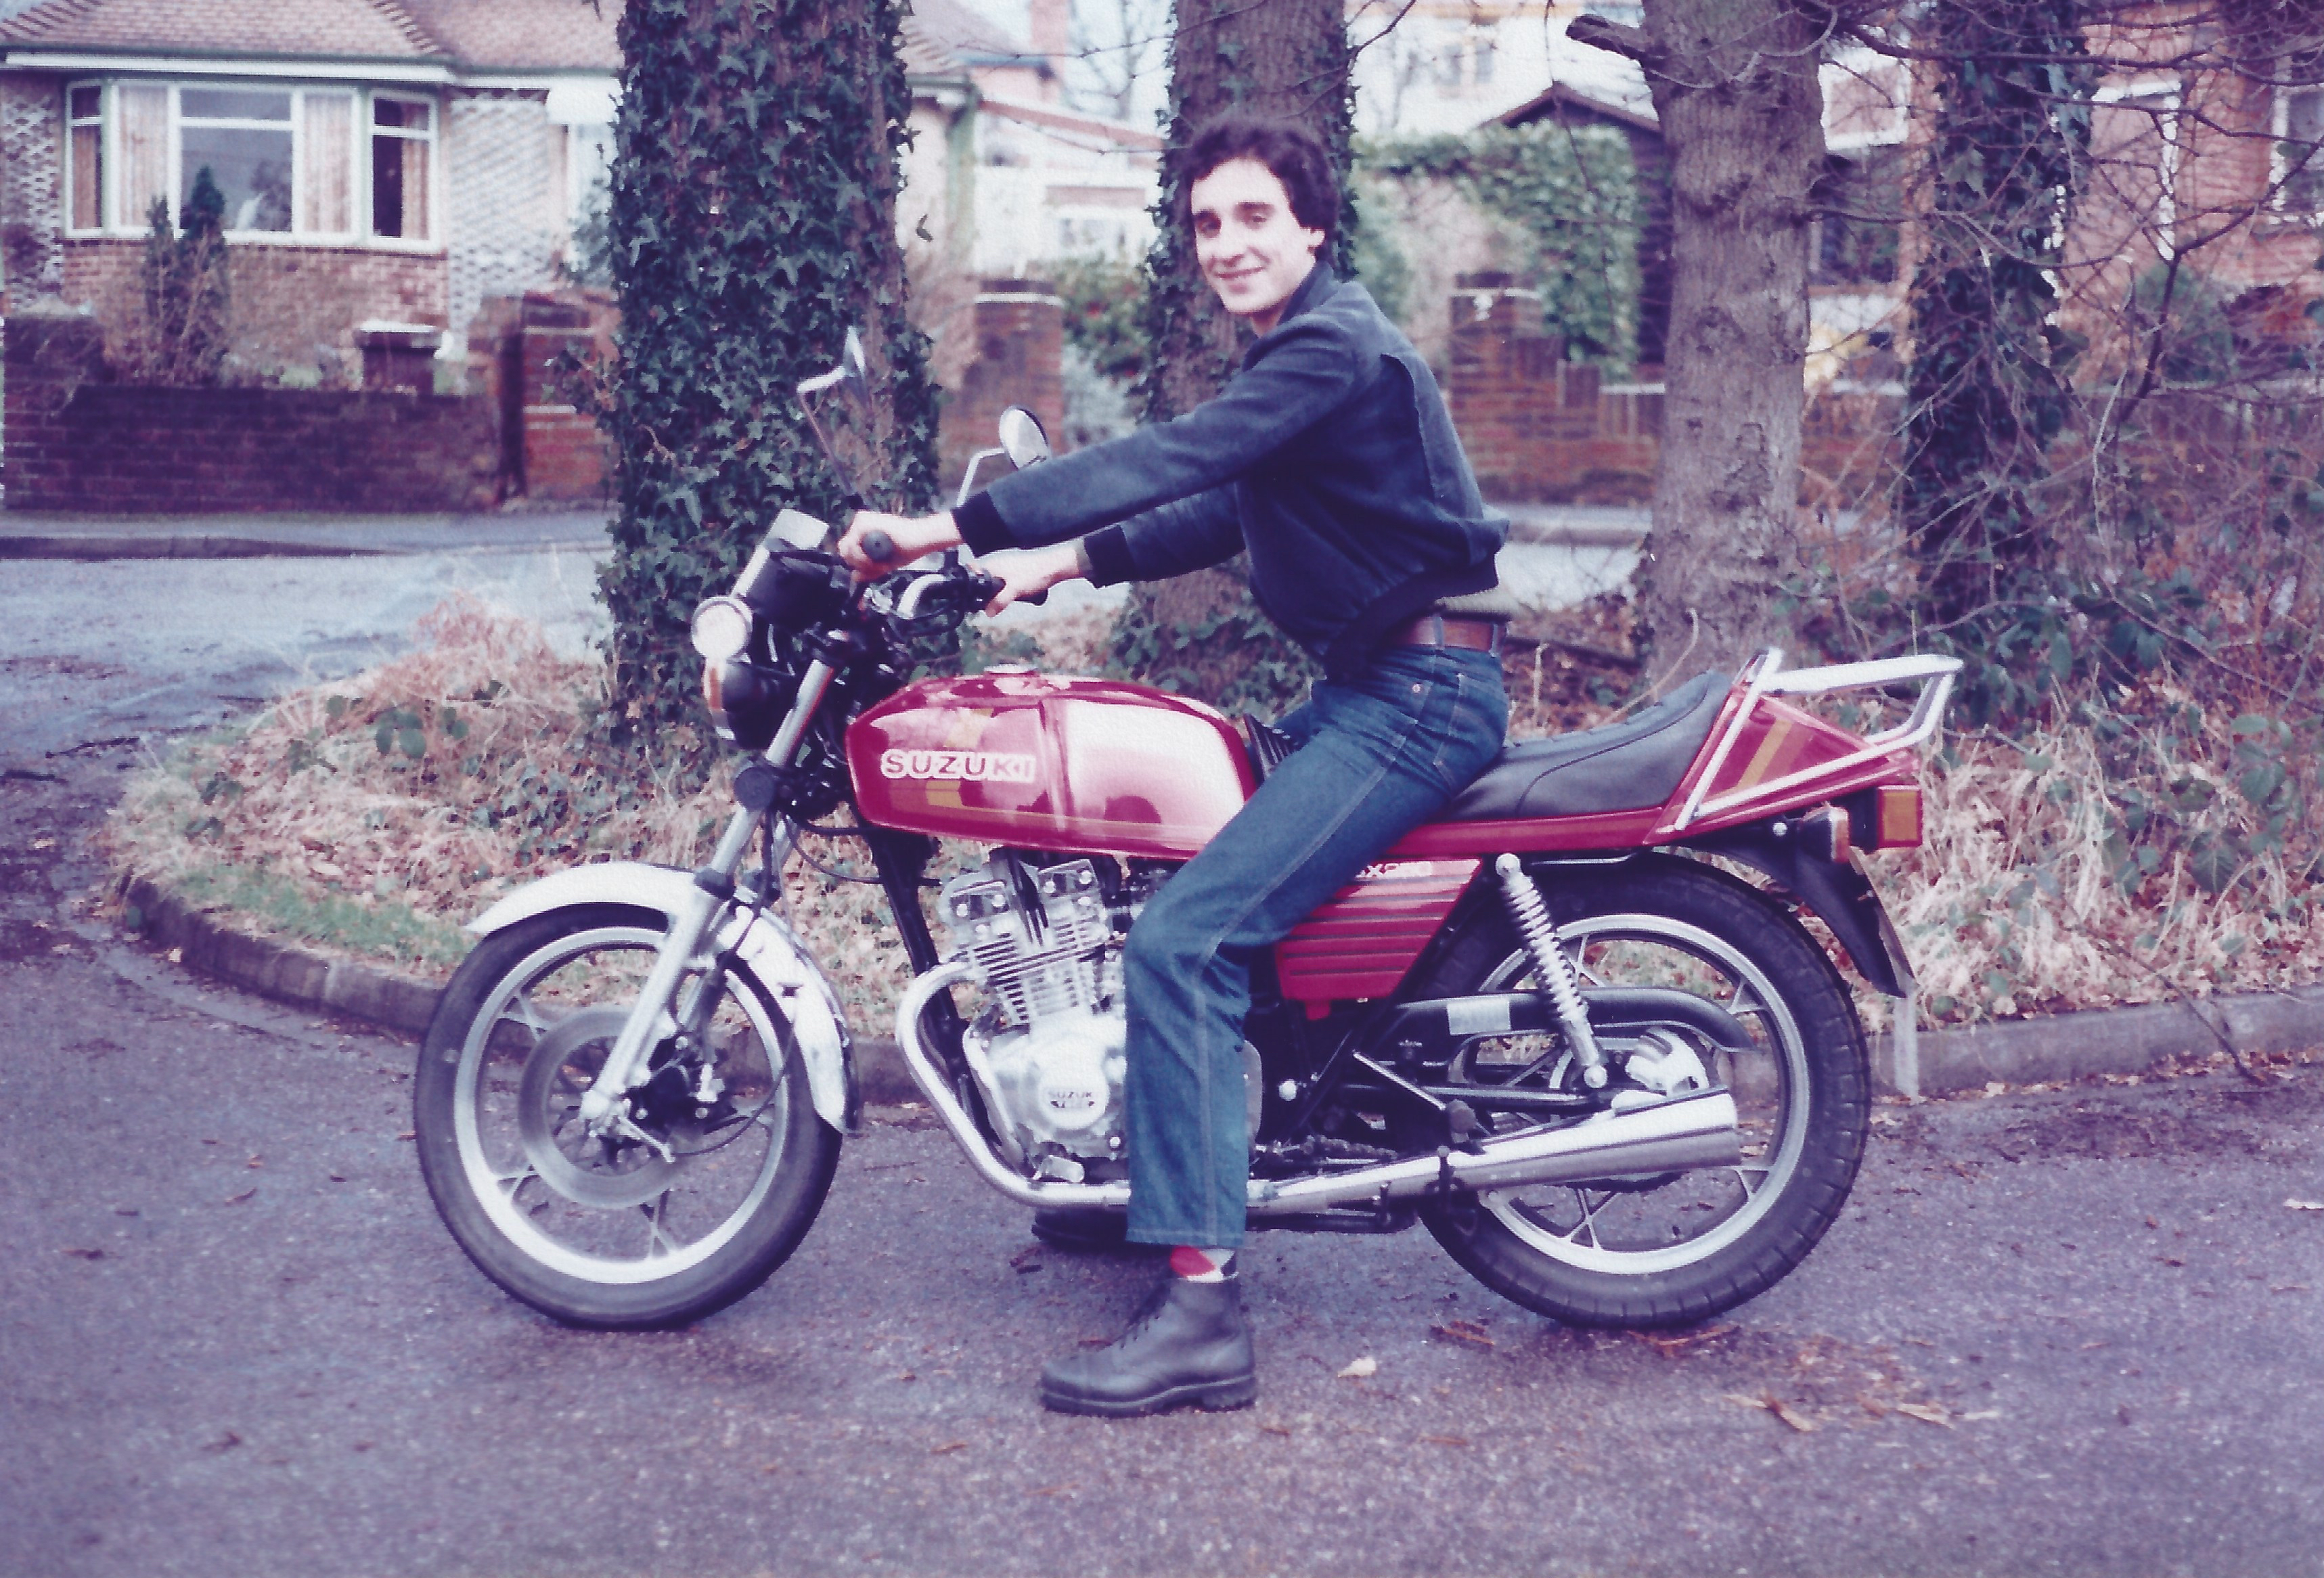 A side view of Kevin Clare, wearing blue jeans, a lightweight grey jacket and utility style boots sitting on Lynda's shiny, new, red Suzuki GSX250. The rear chromed luggage rack is shown along with a clear view of the side panel which has several parallel black stripe indentations. The bike is positioned on a small, quiet residential, roundabout with four large trees on it